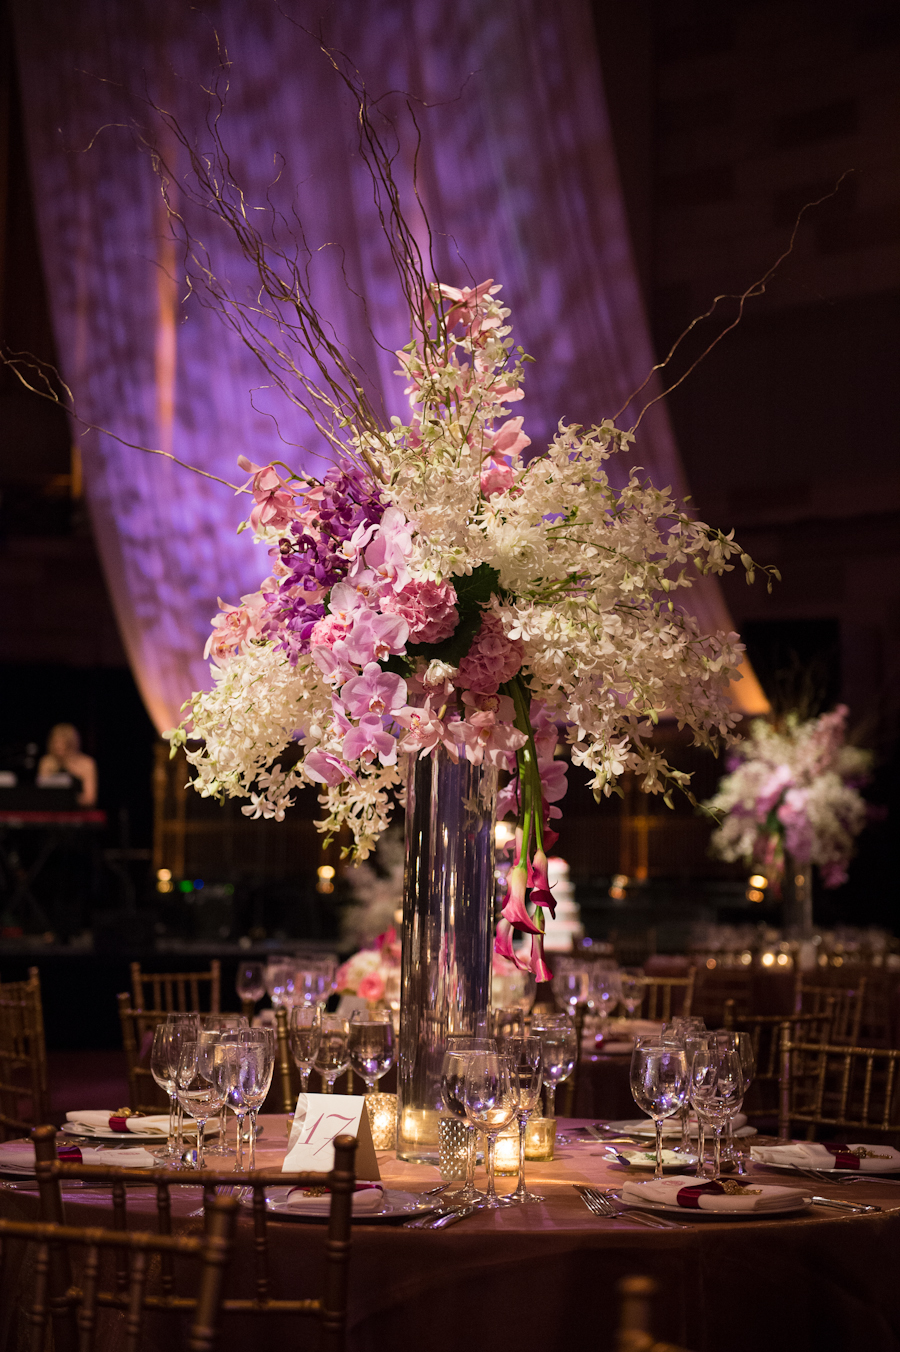 gotham hall brian hatton ang weddings and events-32.jpg